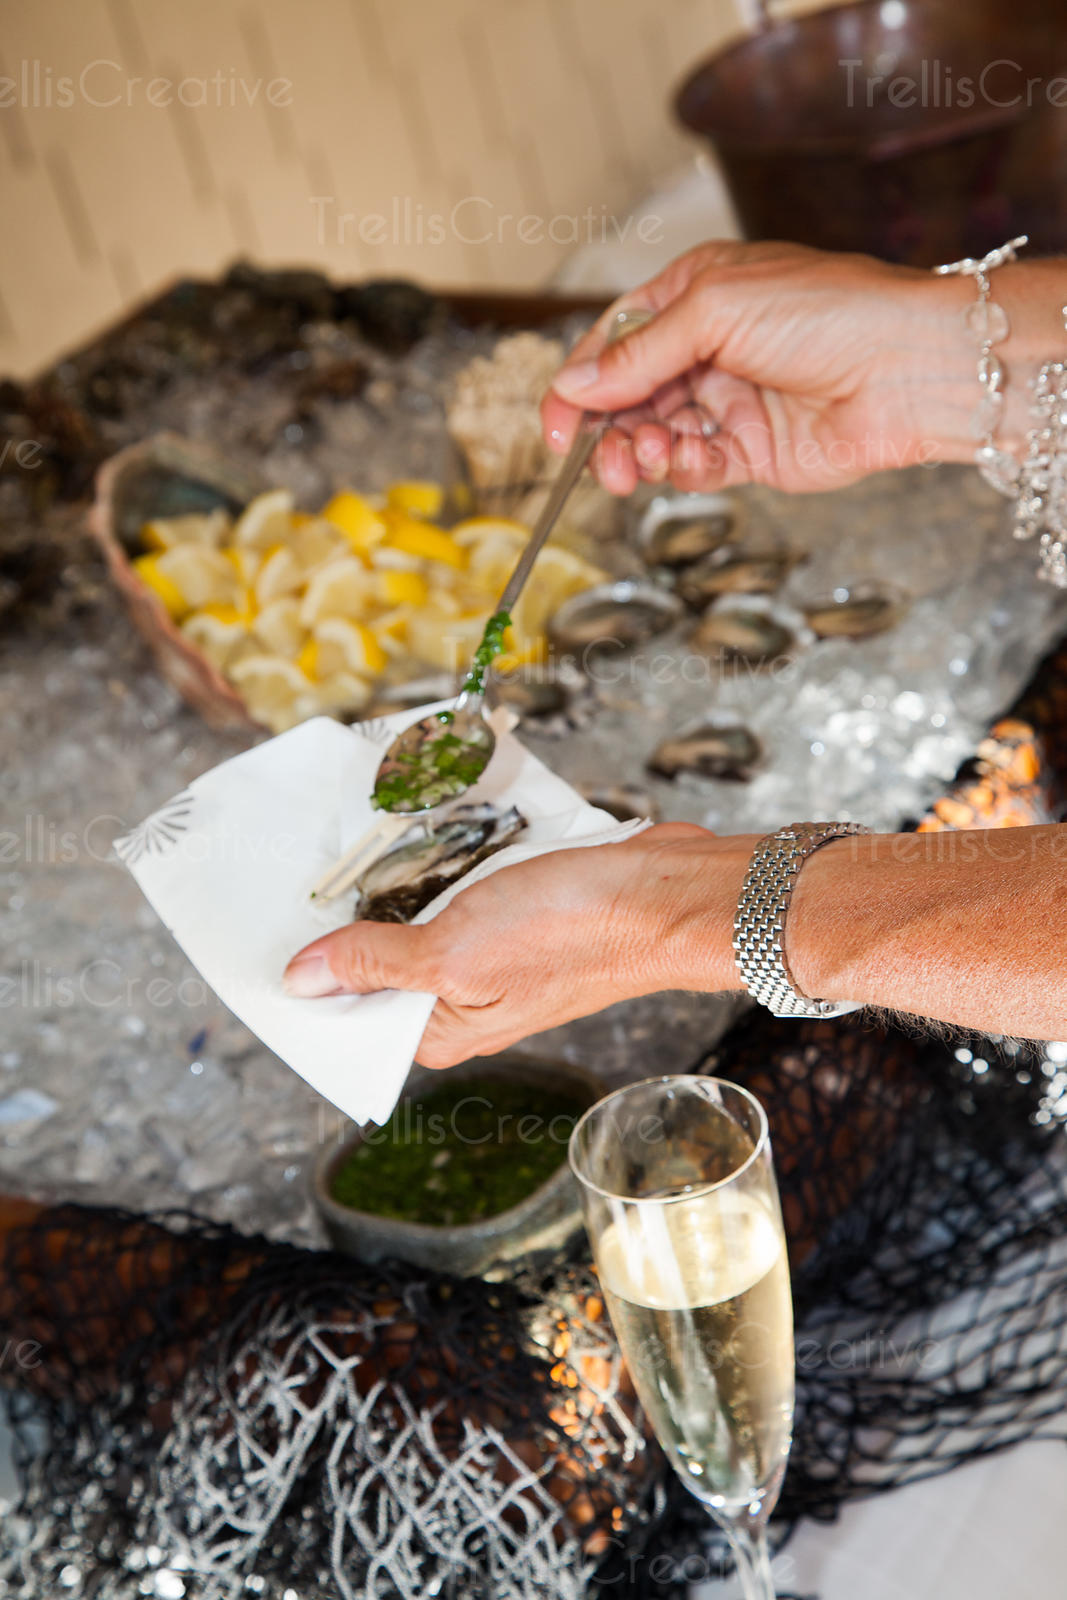 A woman spoons mignonette onto a raw oyster